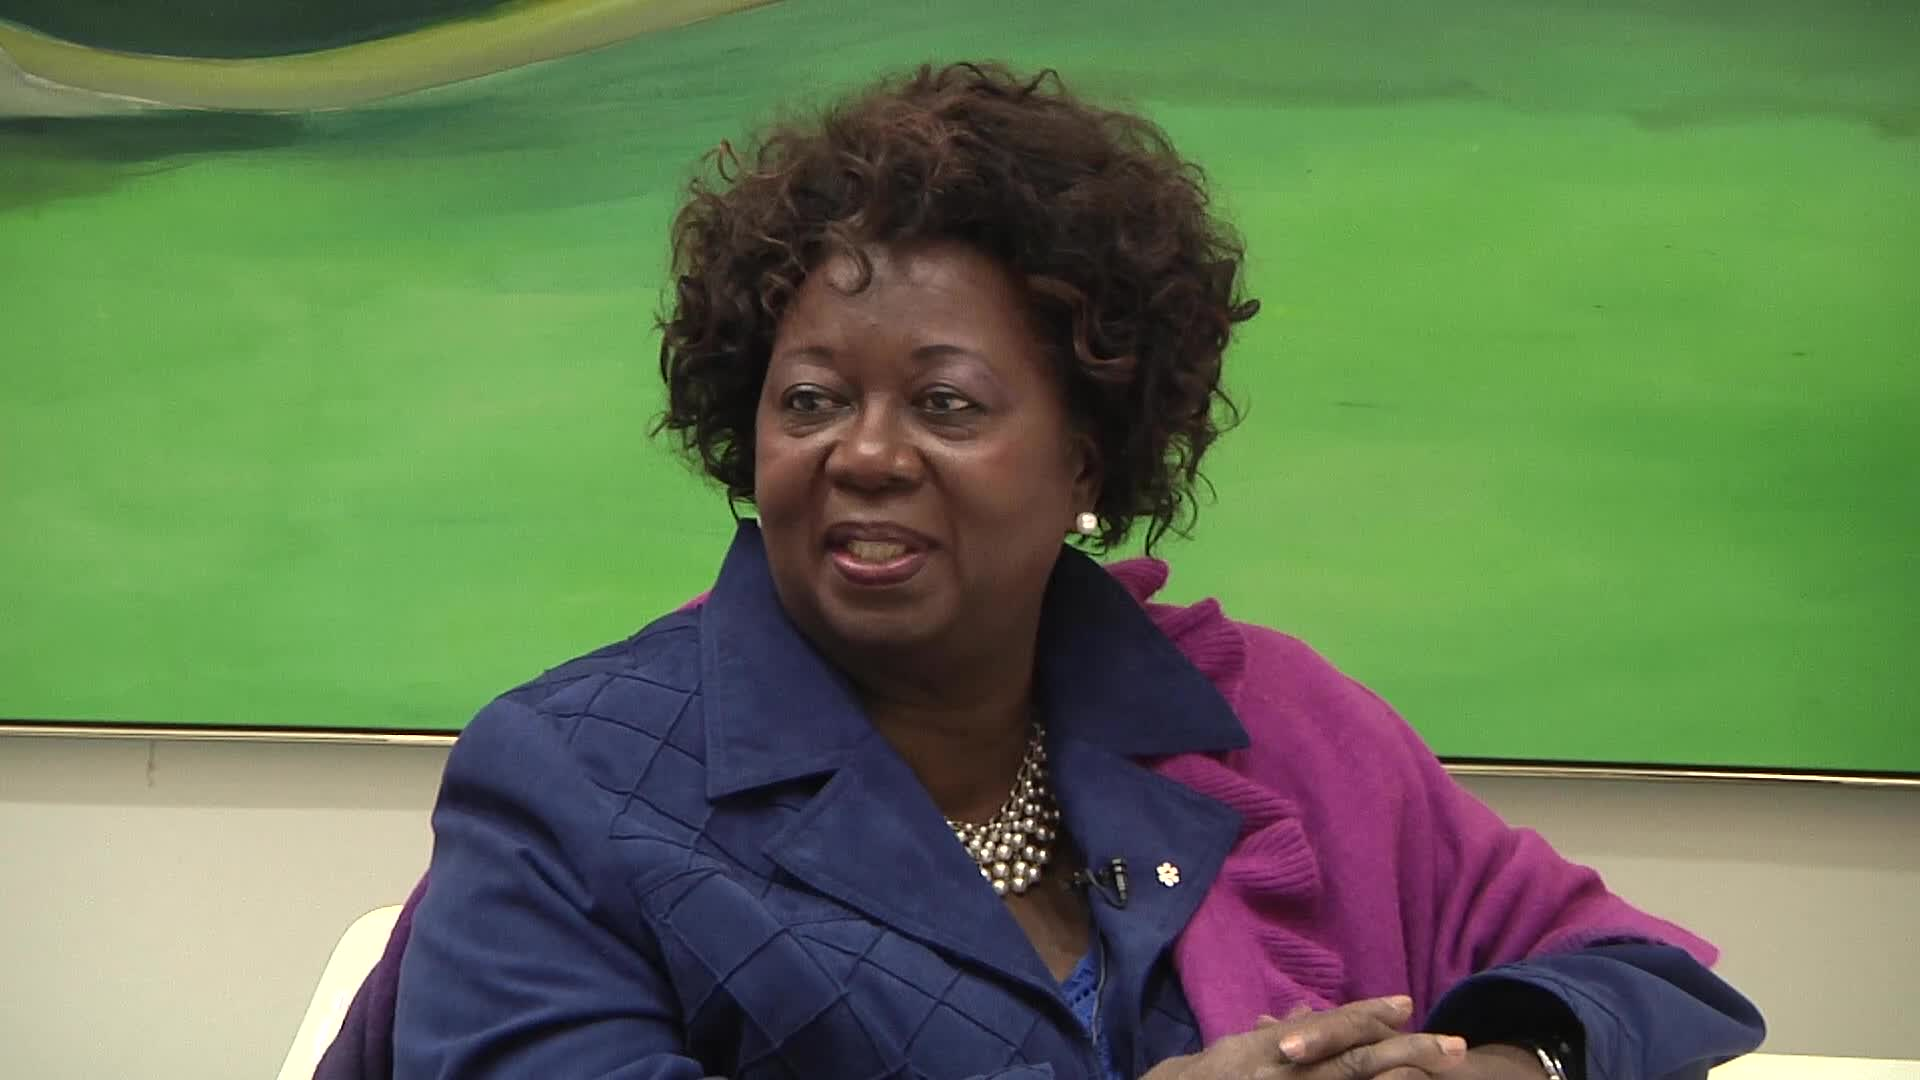 Jean Augustine interview: discusses buttons as identifiers